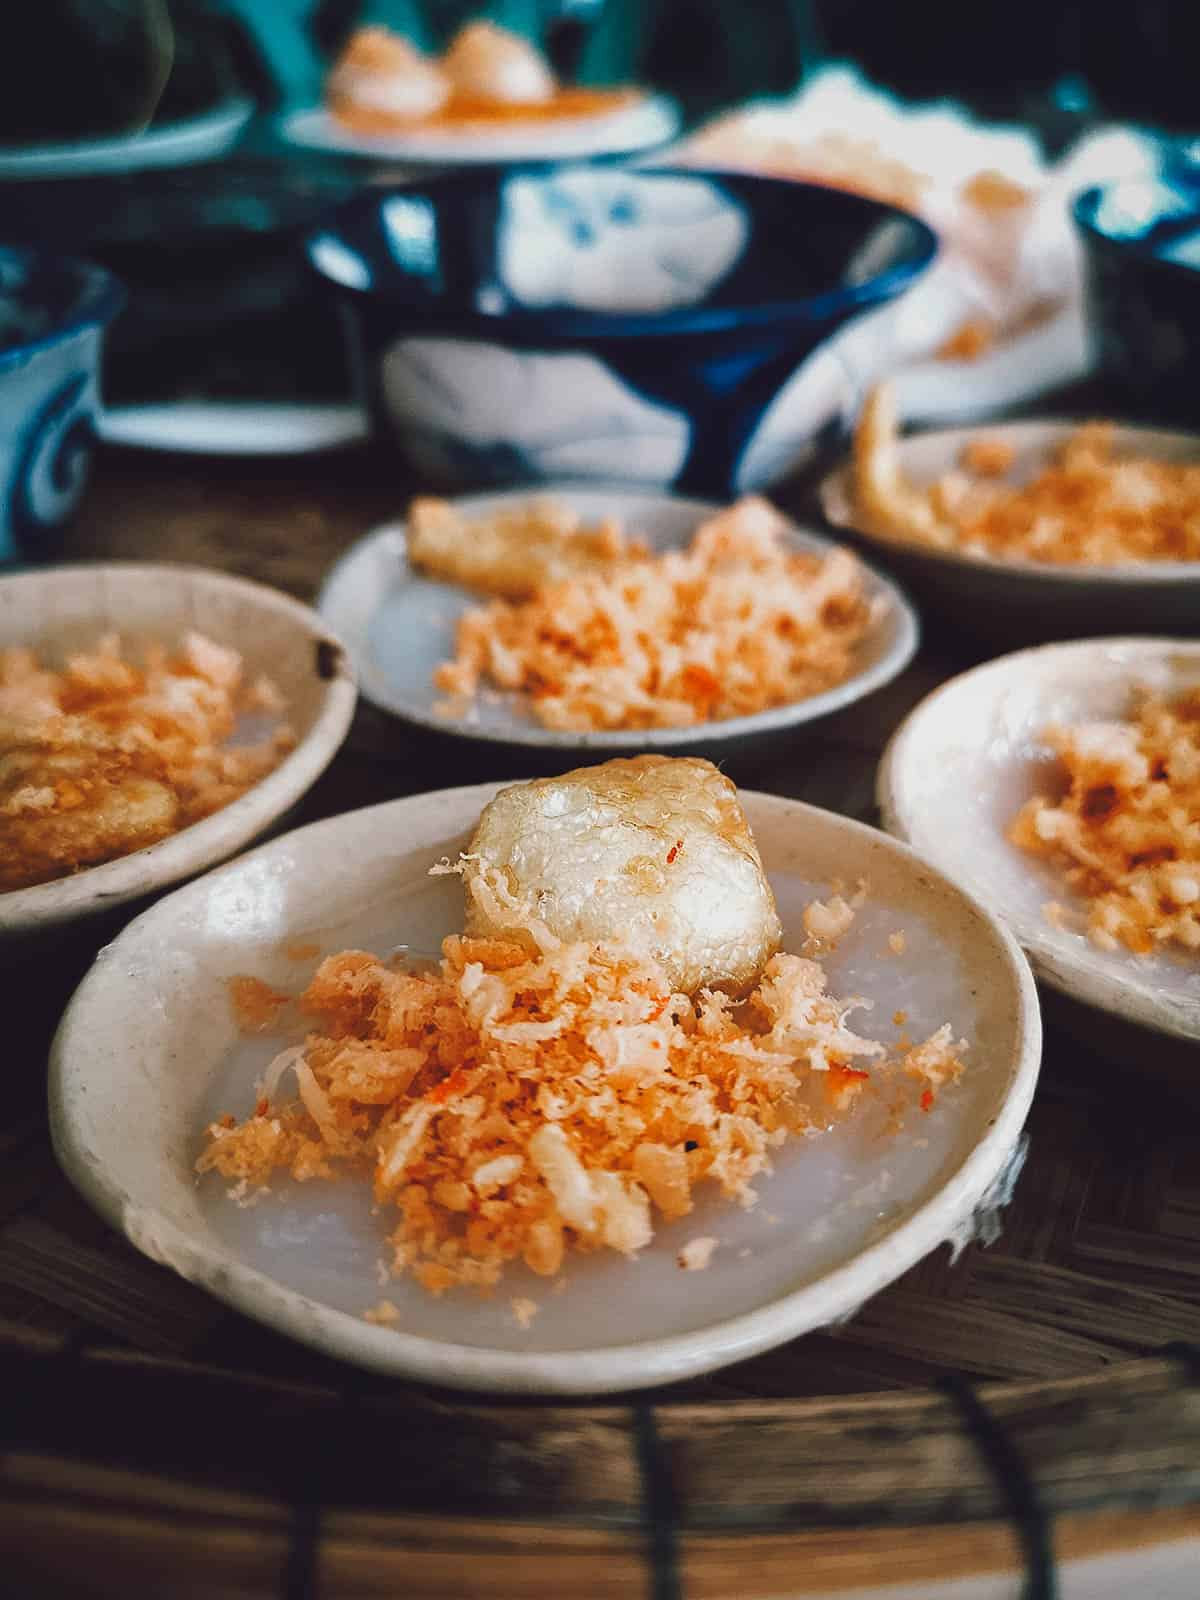 Small plates of banh beo